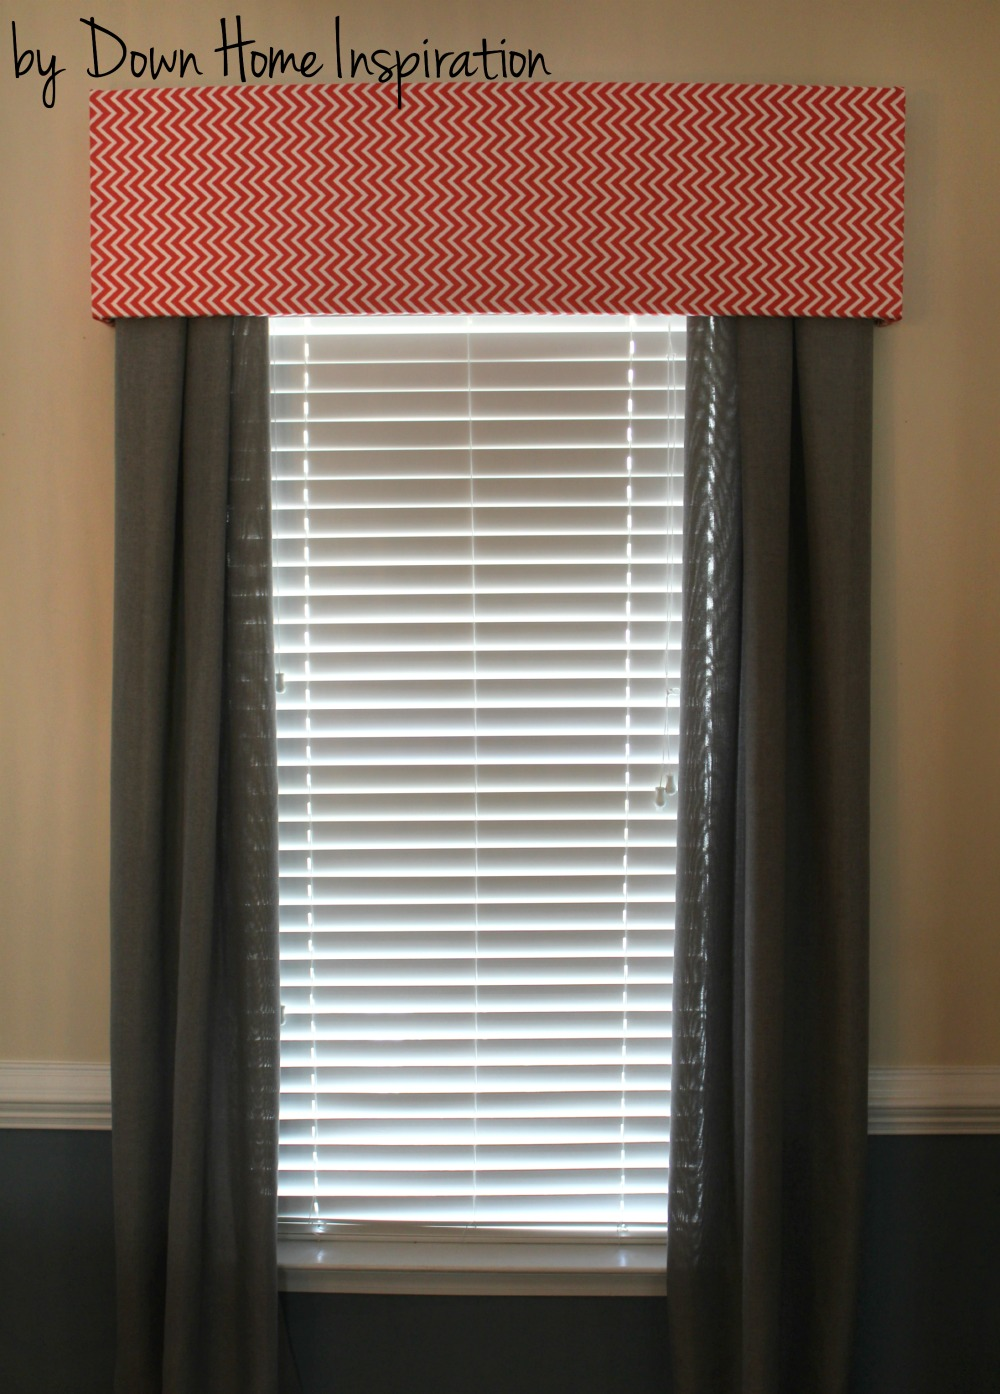 renter-friendly-window-valance-9